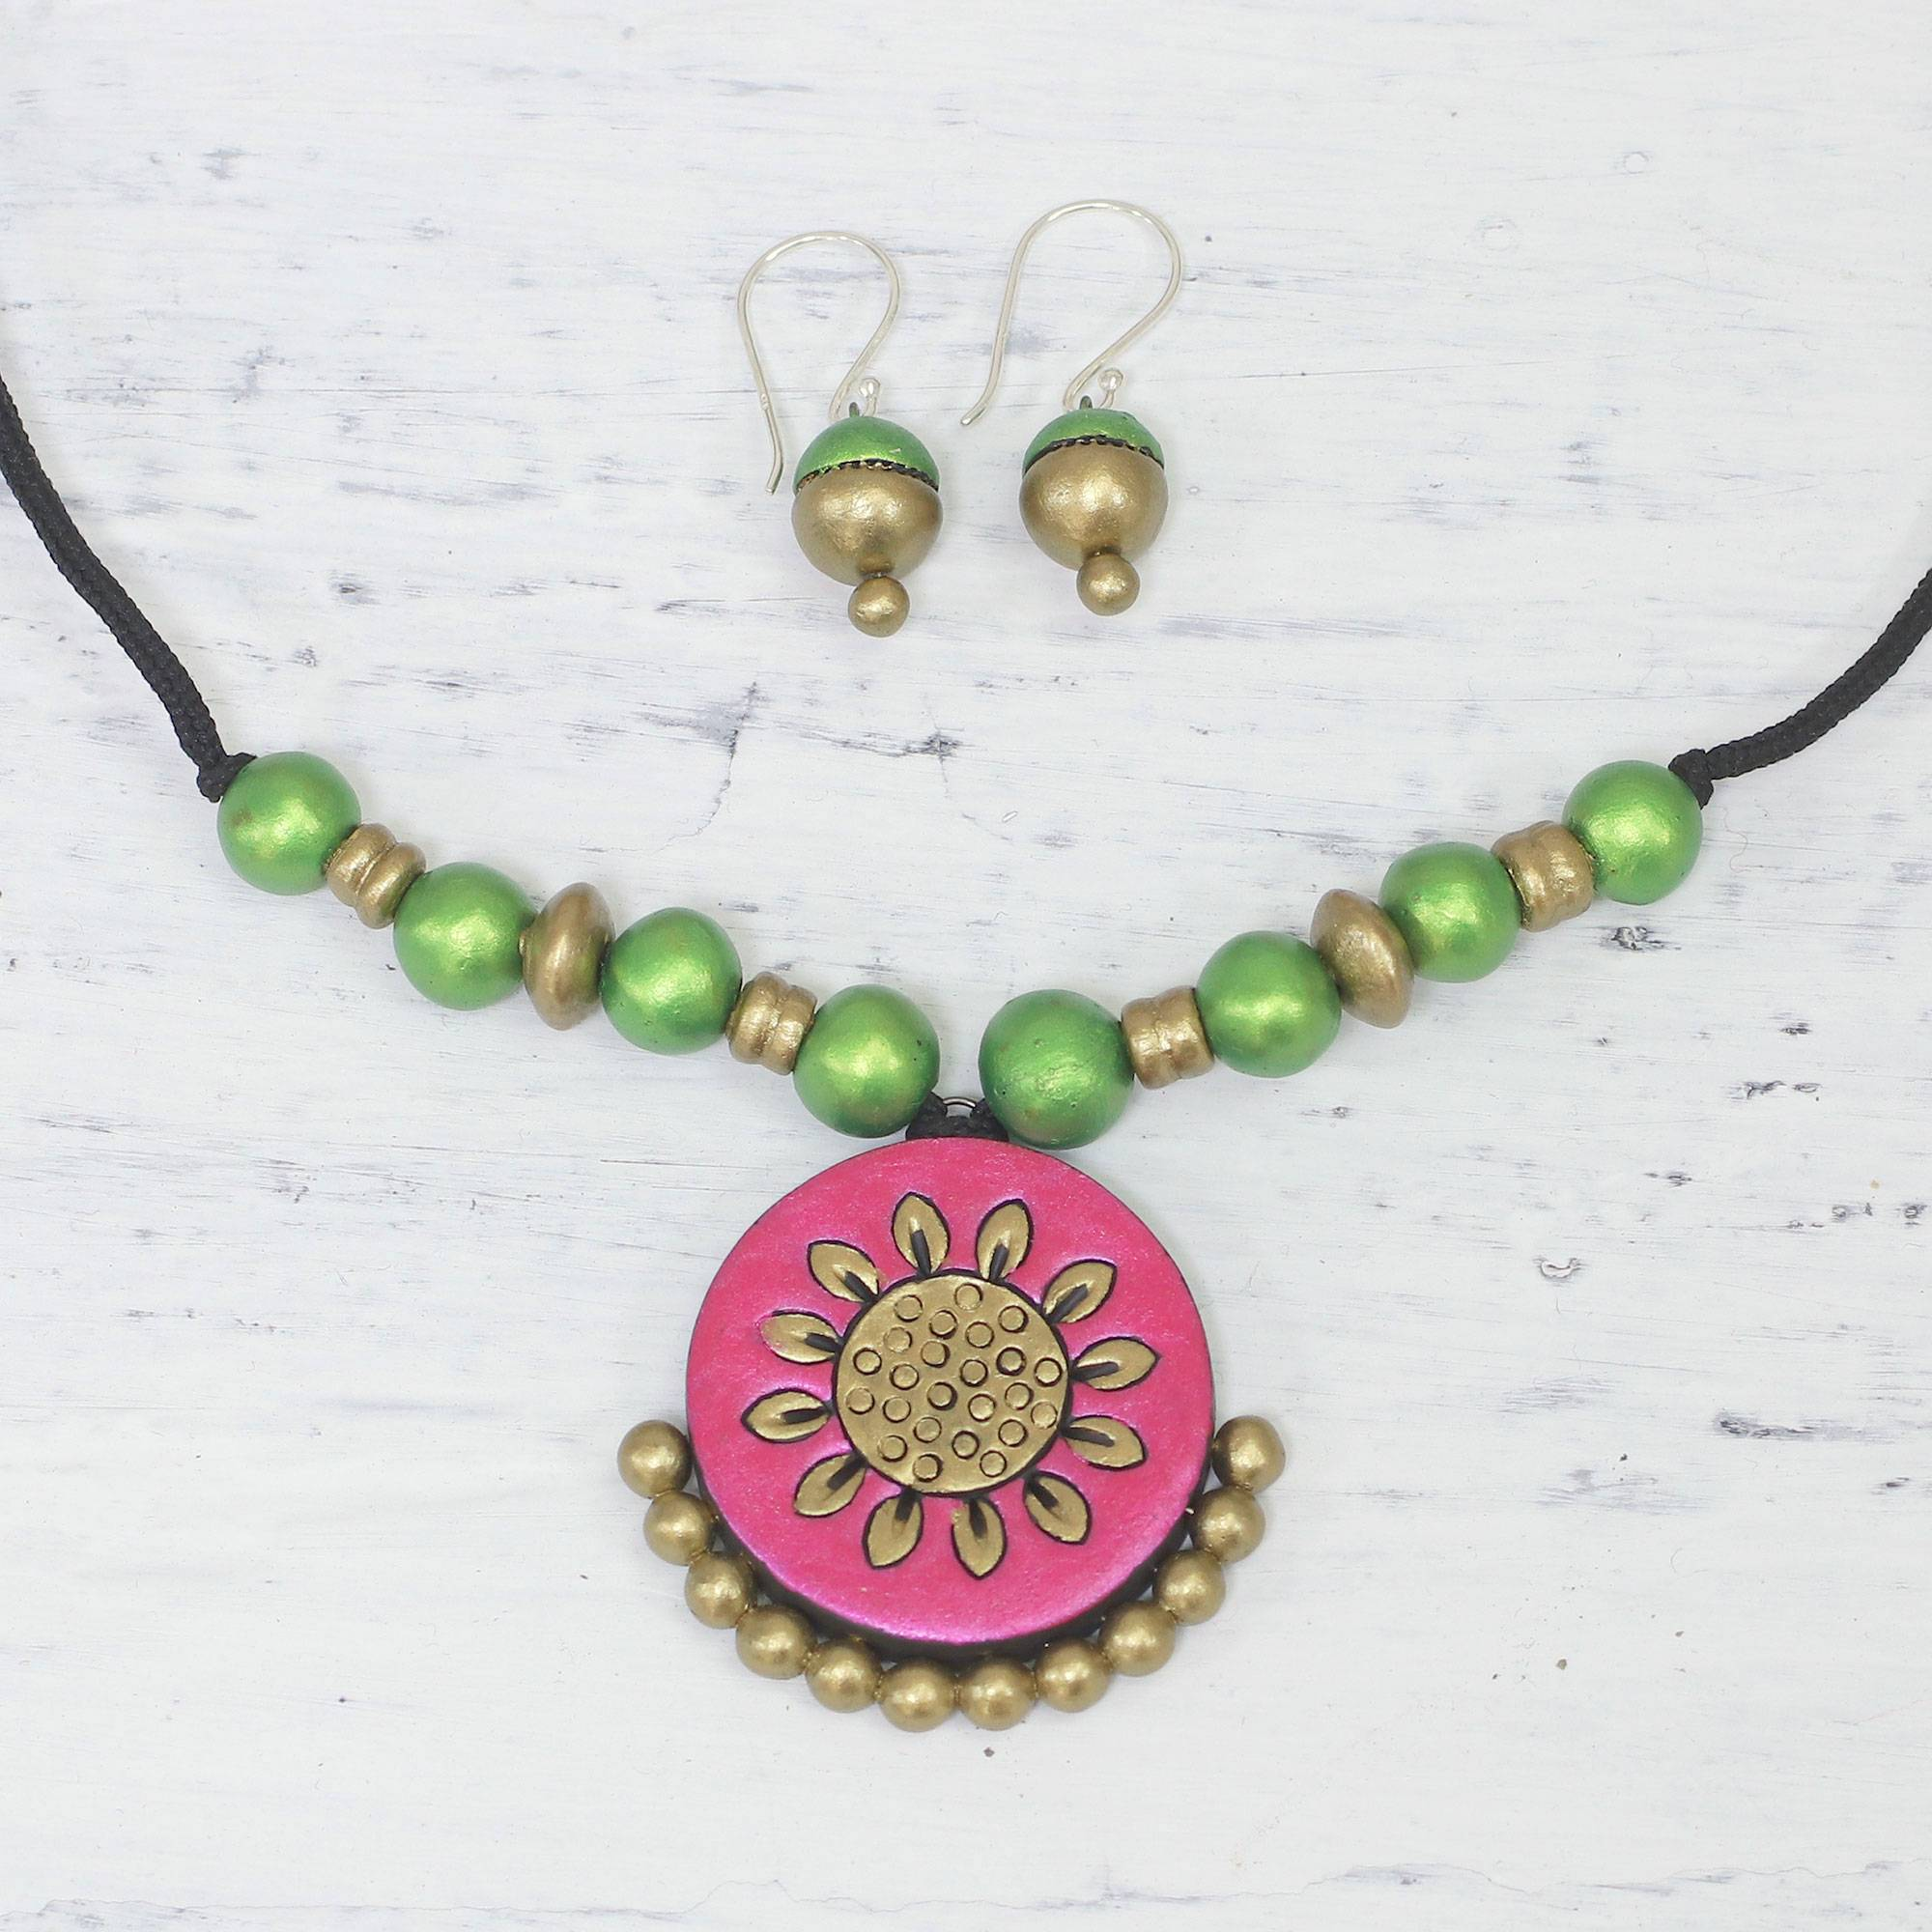 0deafc05f Handcrafted Floral Ceramic Jewelry Set from India - Floral Glamour ...